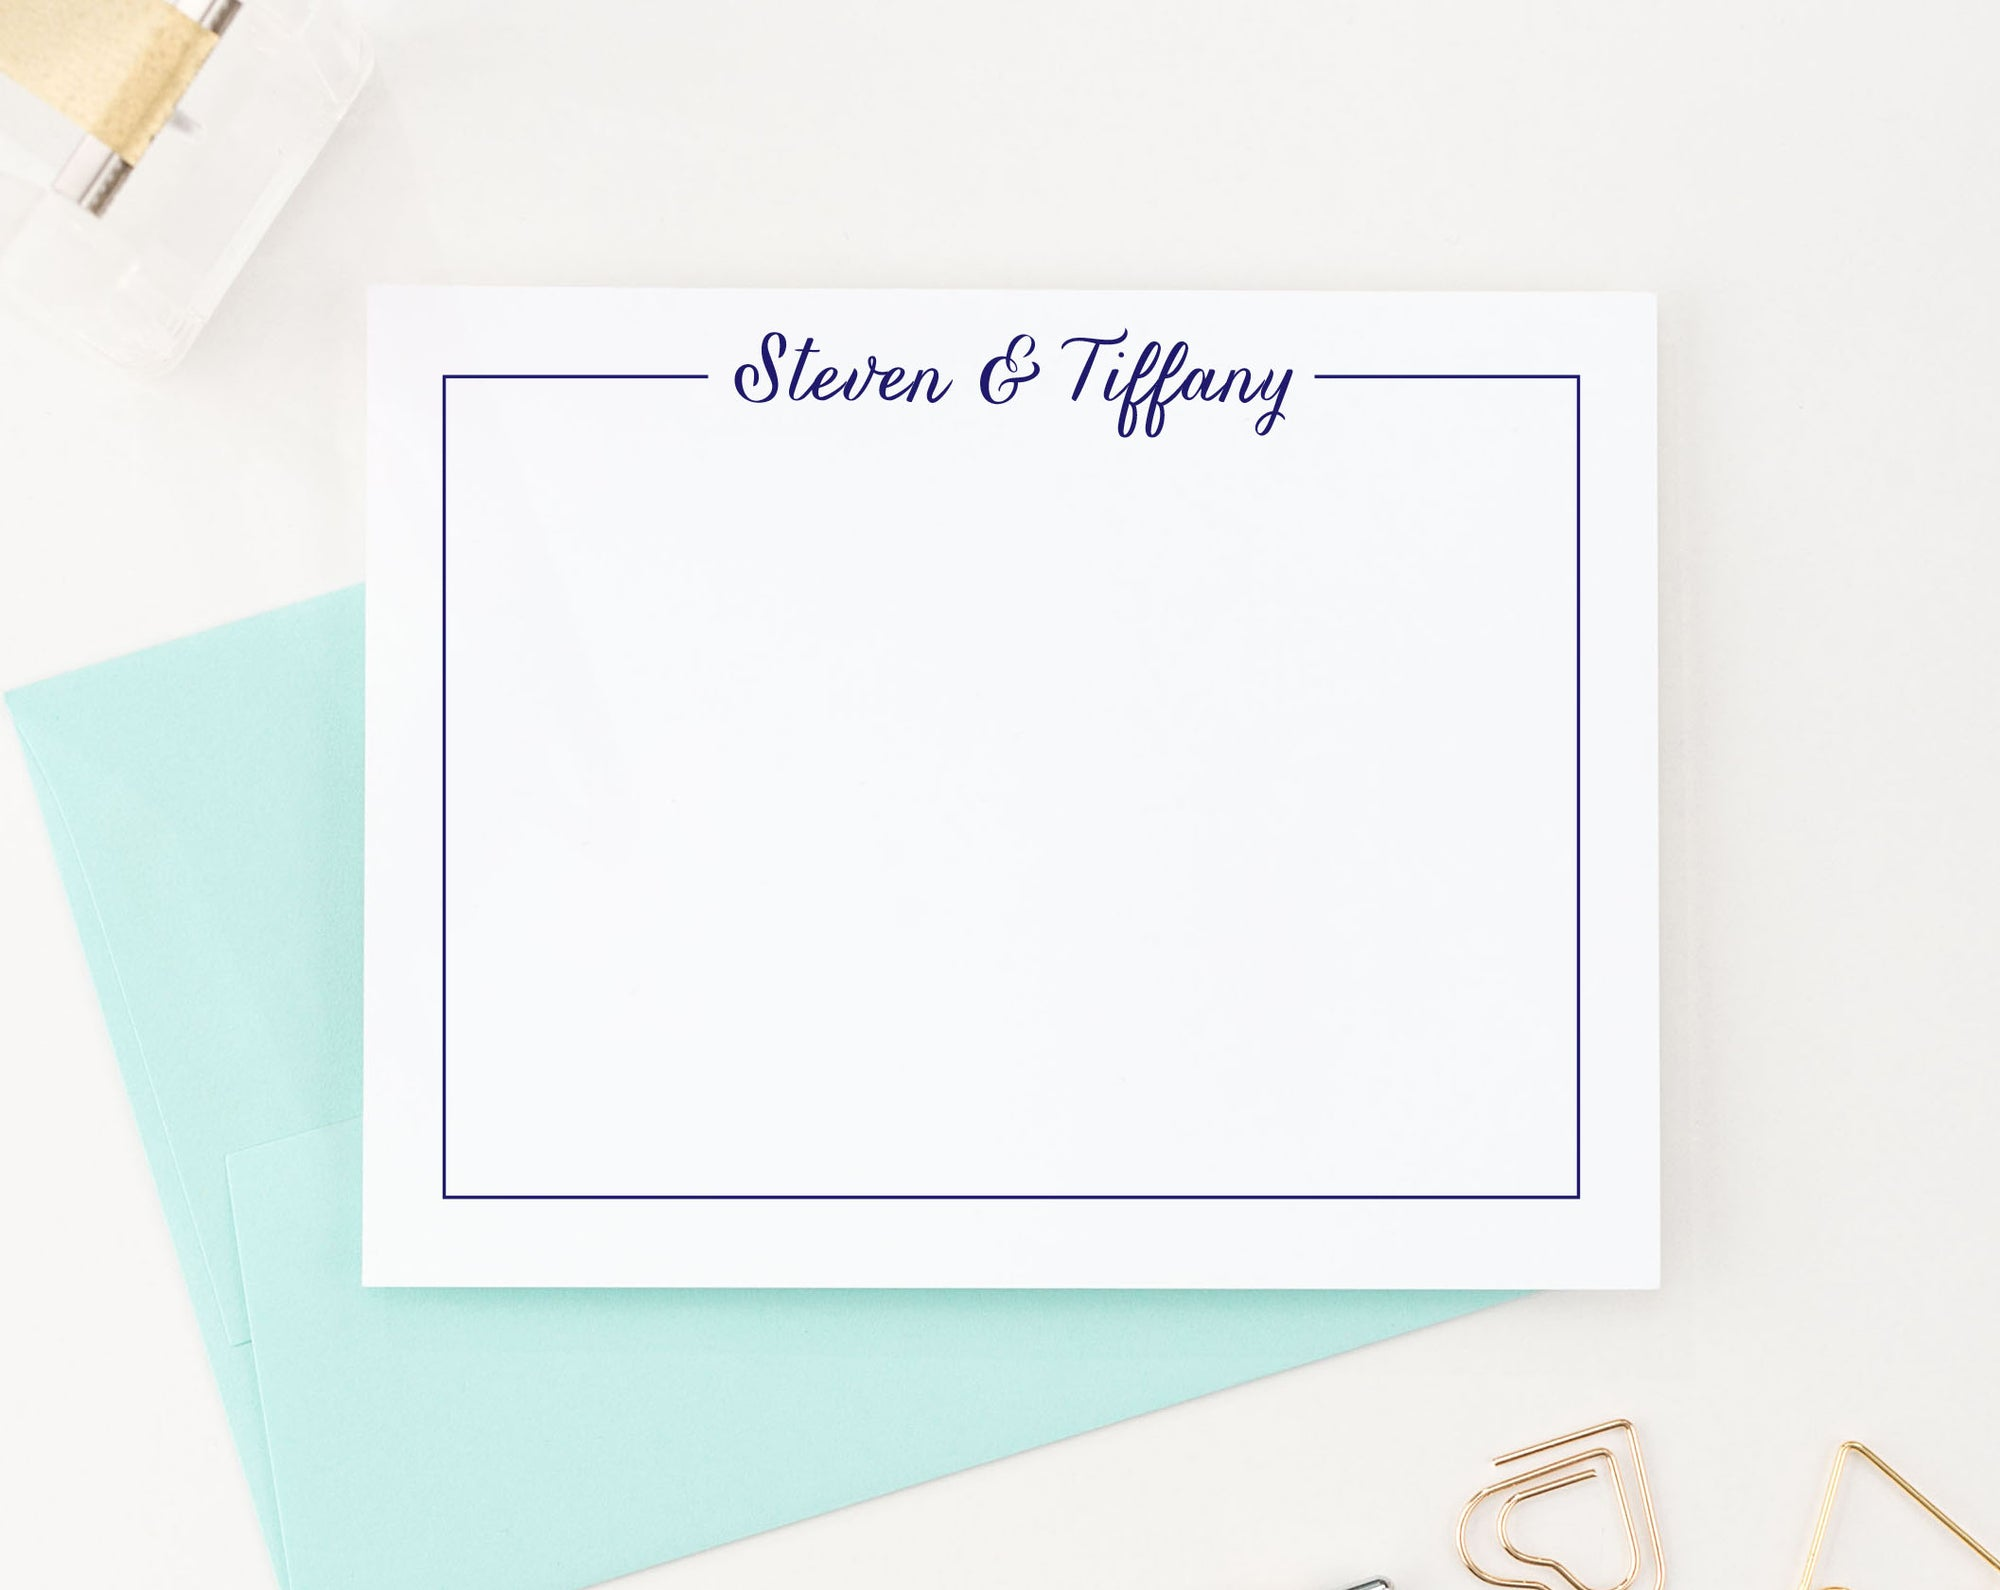 WS003 border and name anniversary thank you cards engagement wedding gifts 1